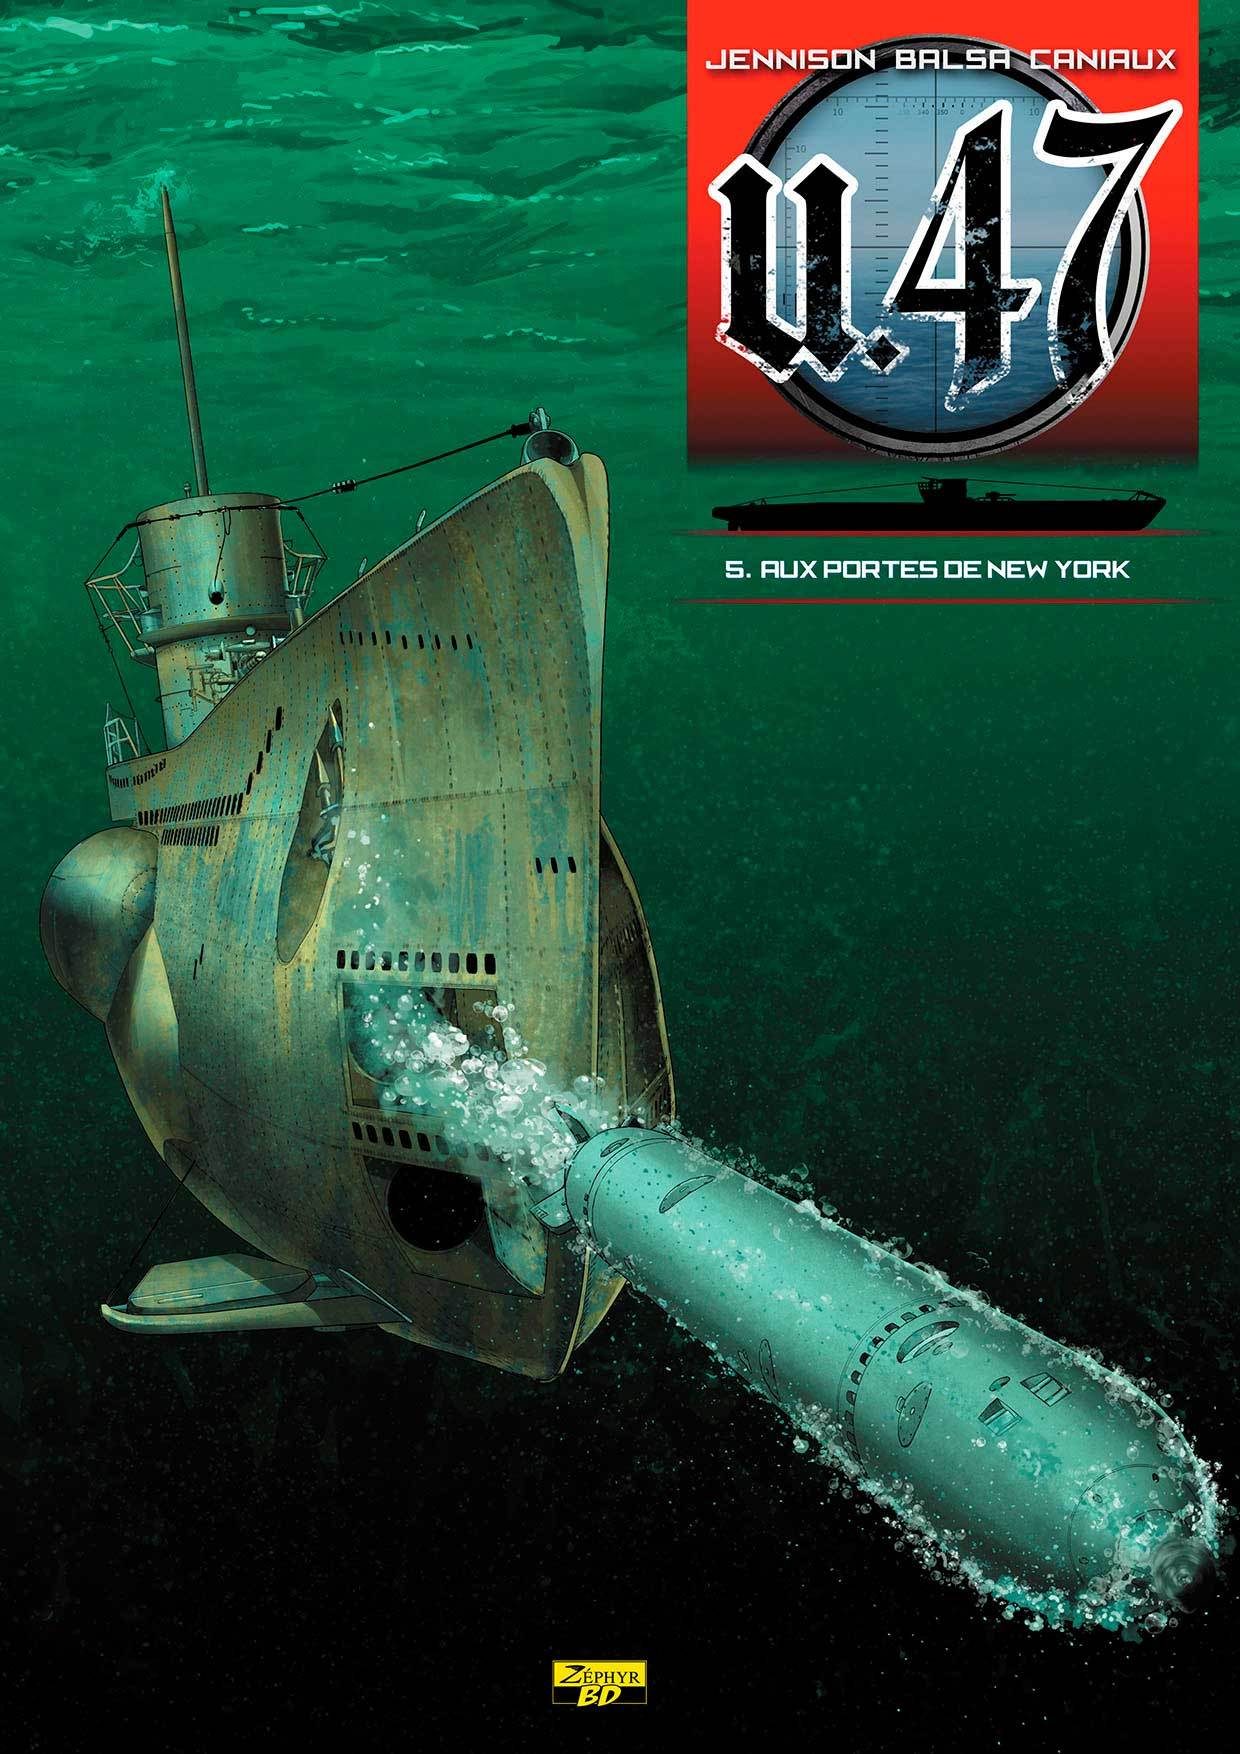 U-47 T05 - BD STD - AUX PORTES DE NEW YORK